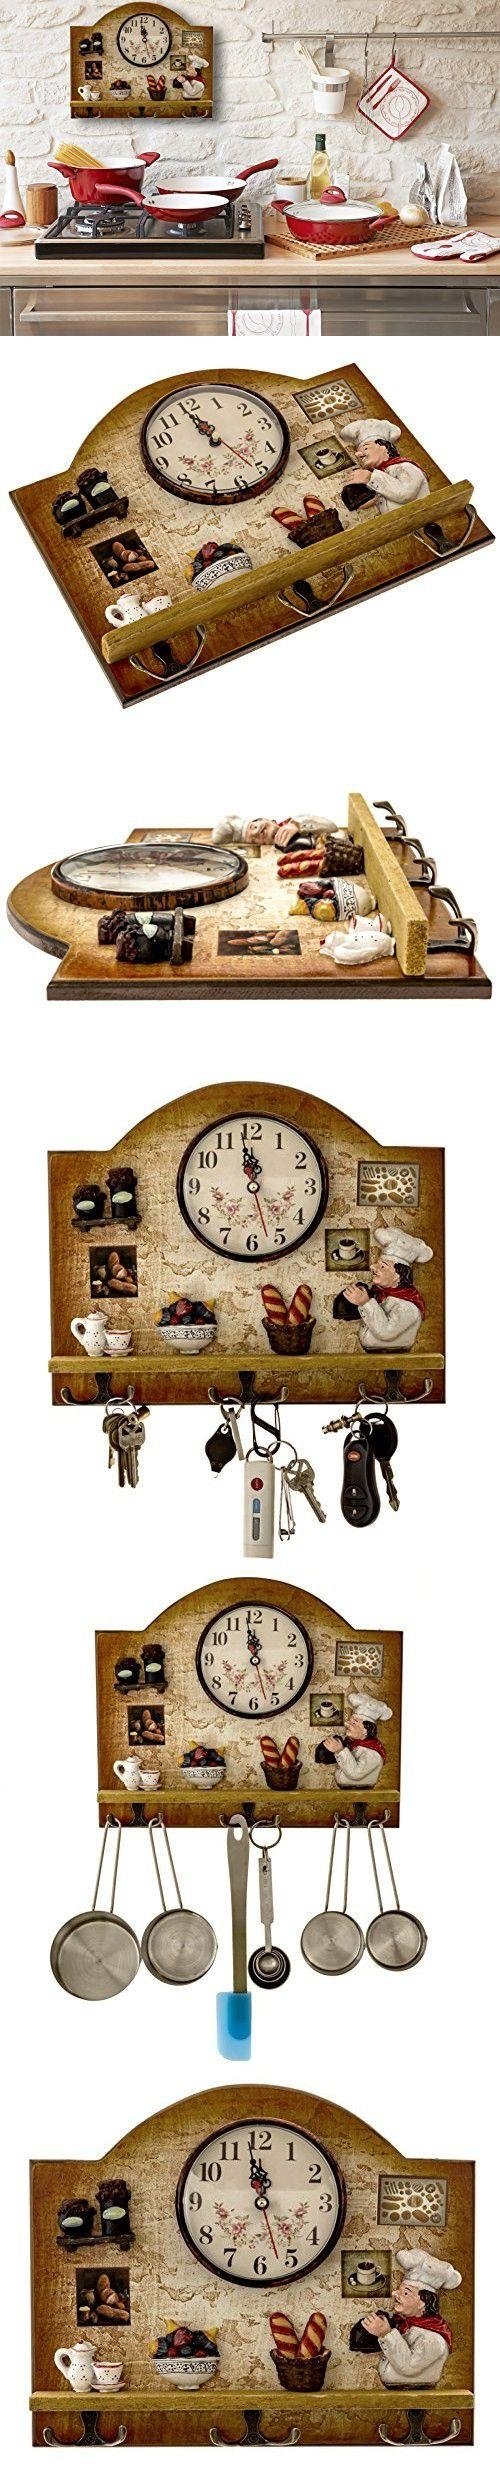 Best 25+ Italian Kitchen Decor Ideas On Pinterest | Apothecary Intended For Italian Ceramic Wall Clock Decors (View 3 of 20)